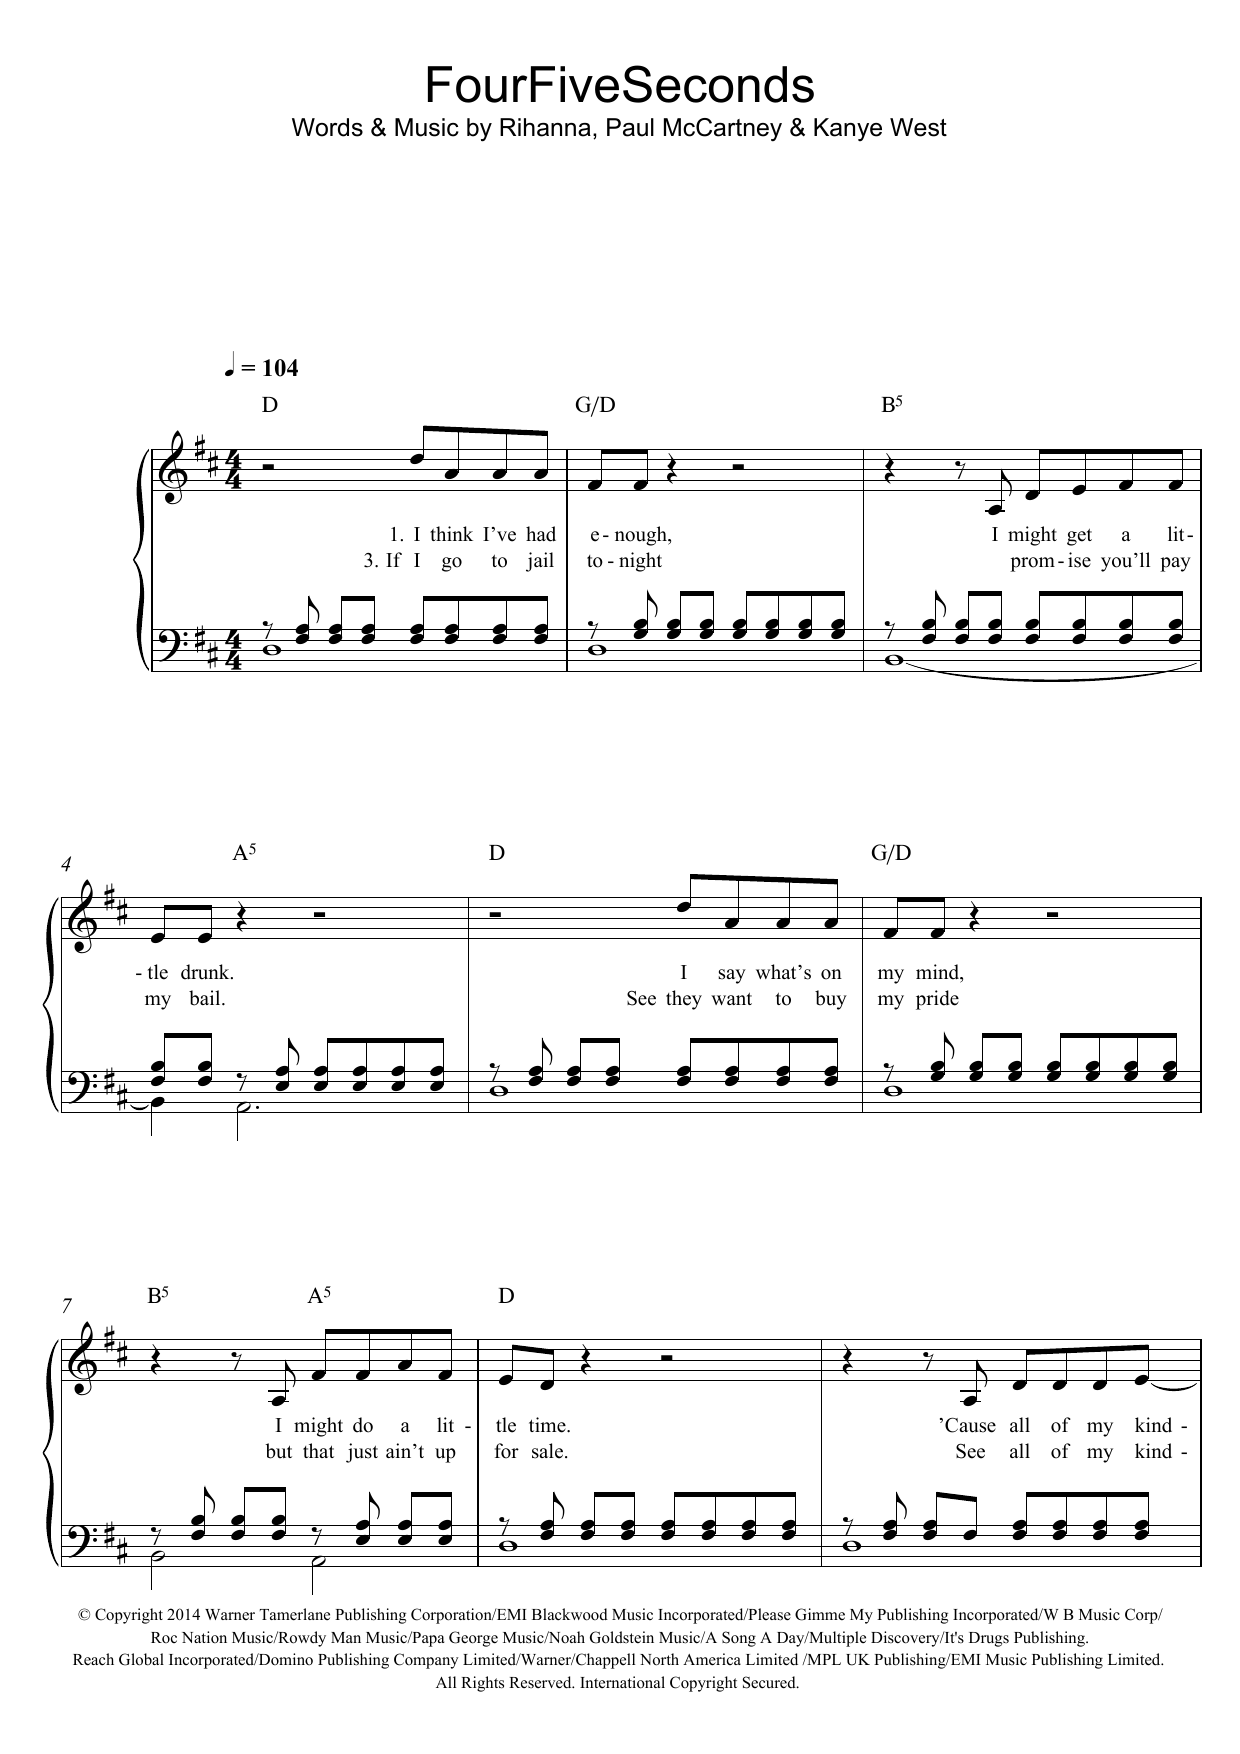 FourFiveSeconds (featuring Kanye West and Paul McCartney) Sheet Music